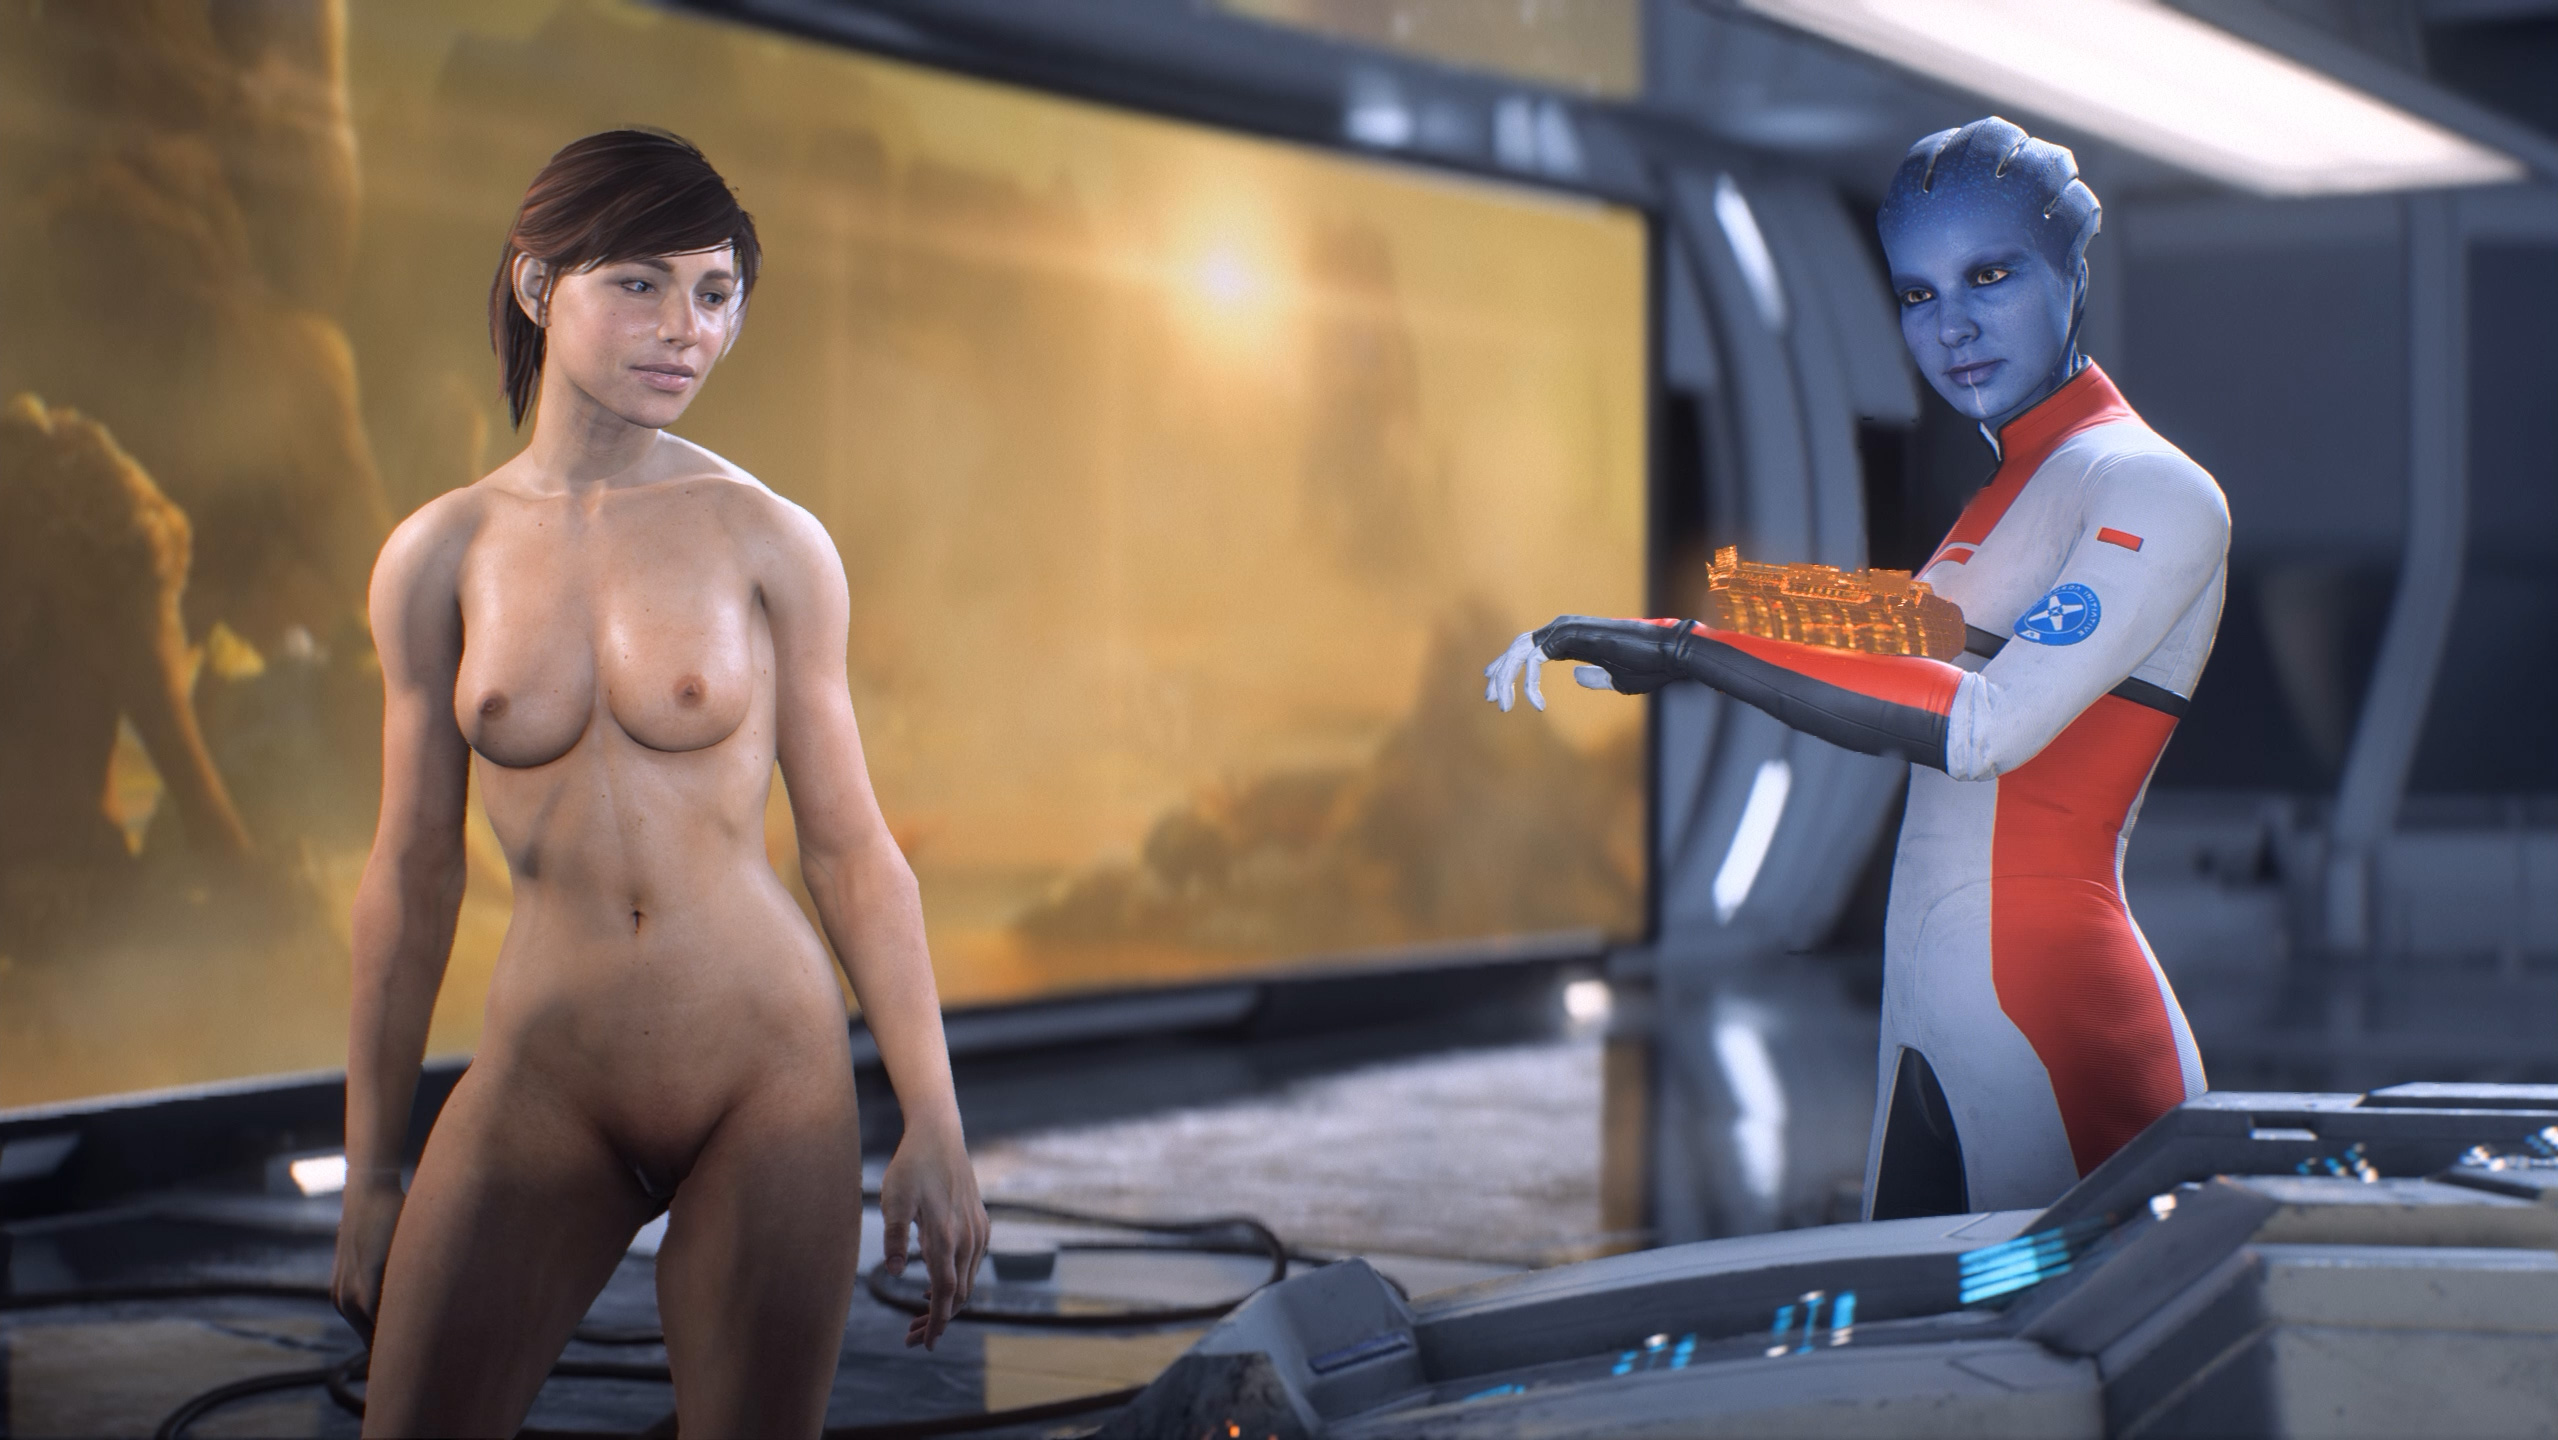 Sexy mass effect photo nackt thumbs